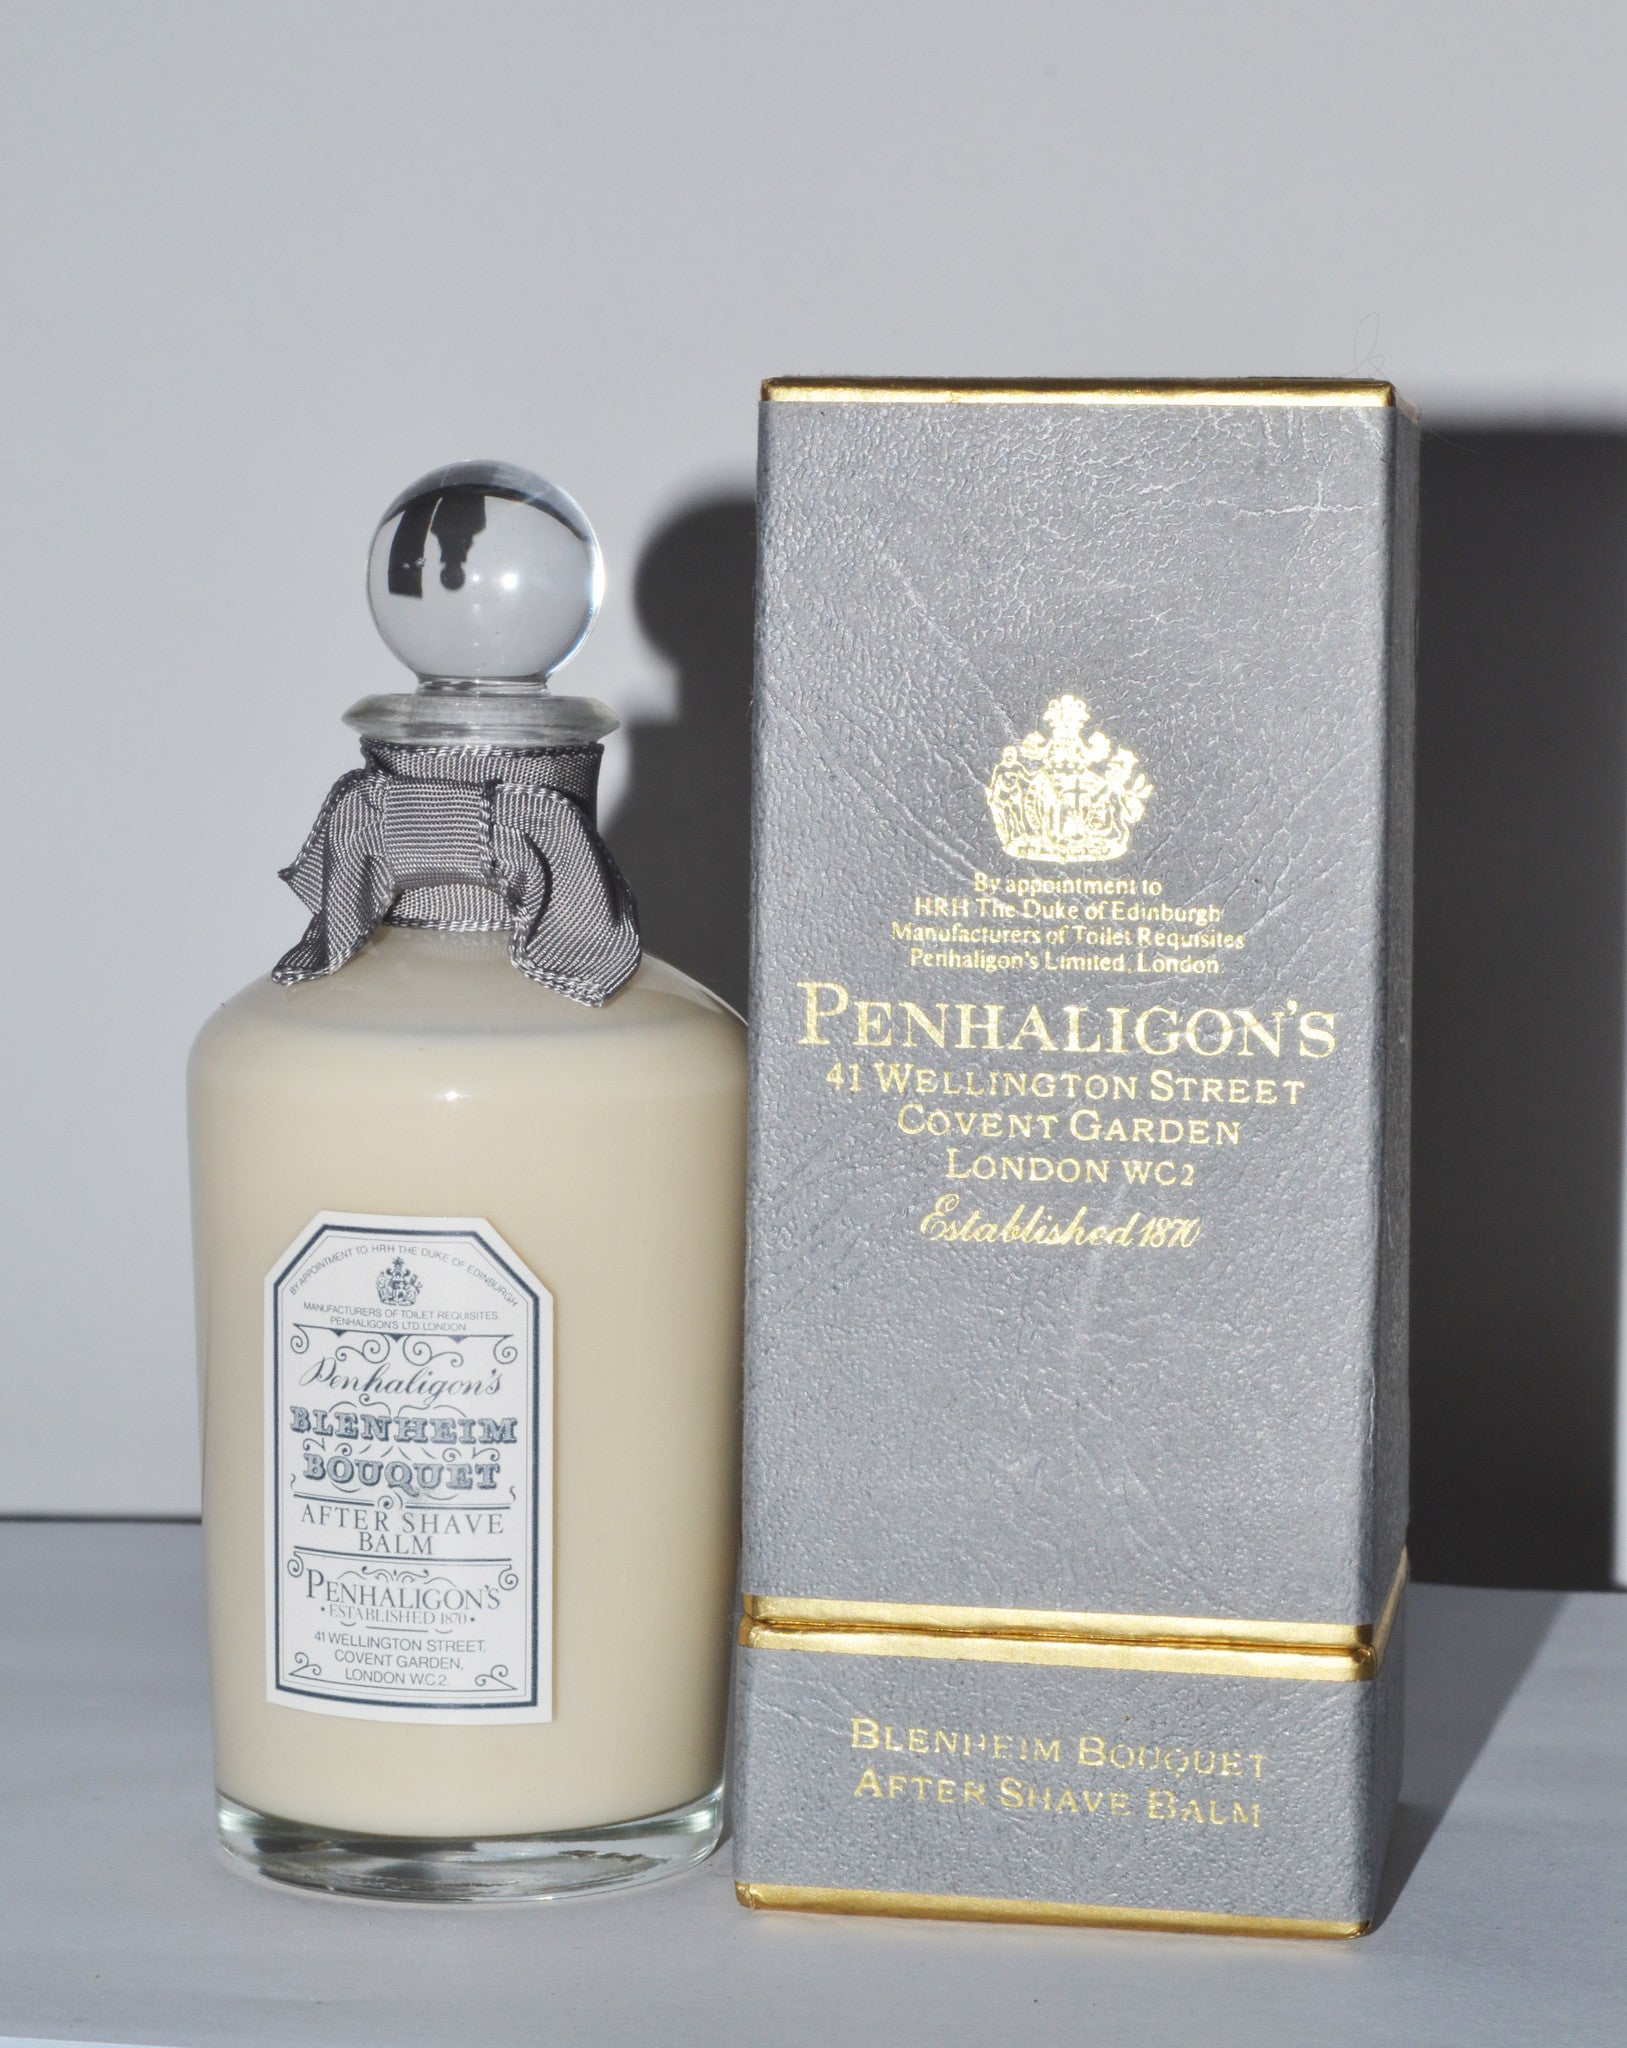 Blenheim Bouquet After Shave Balm By Penhaligon